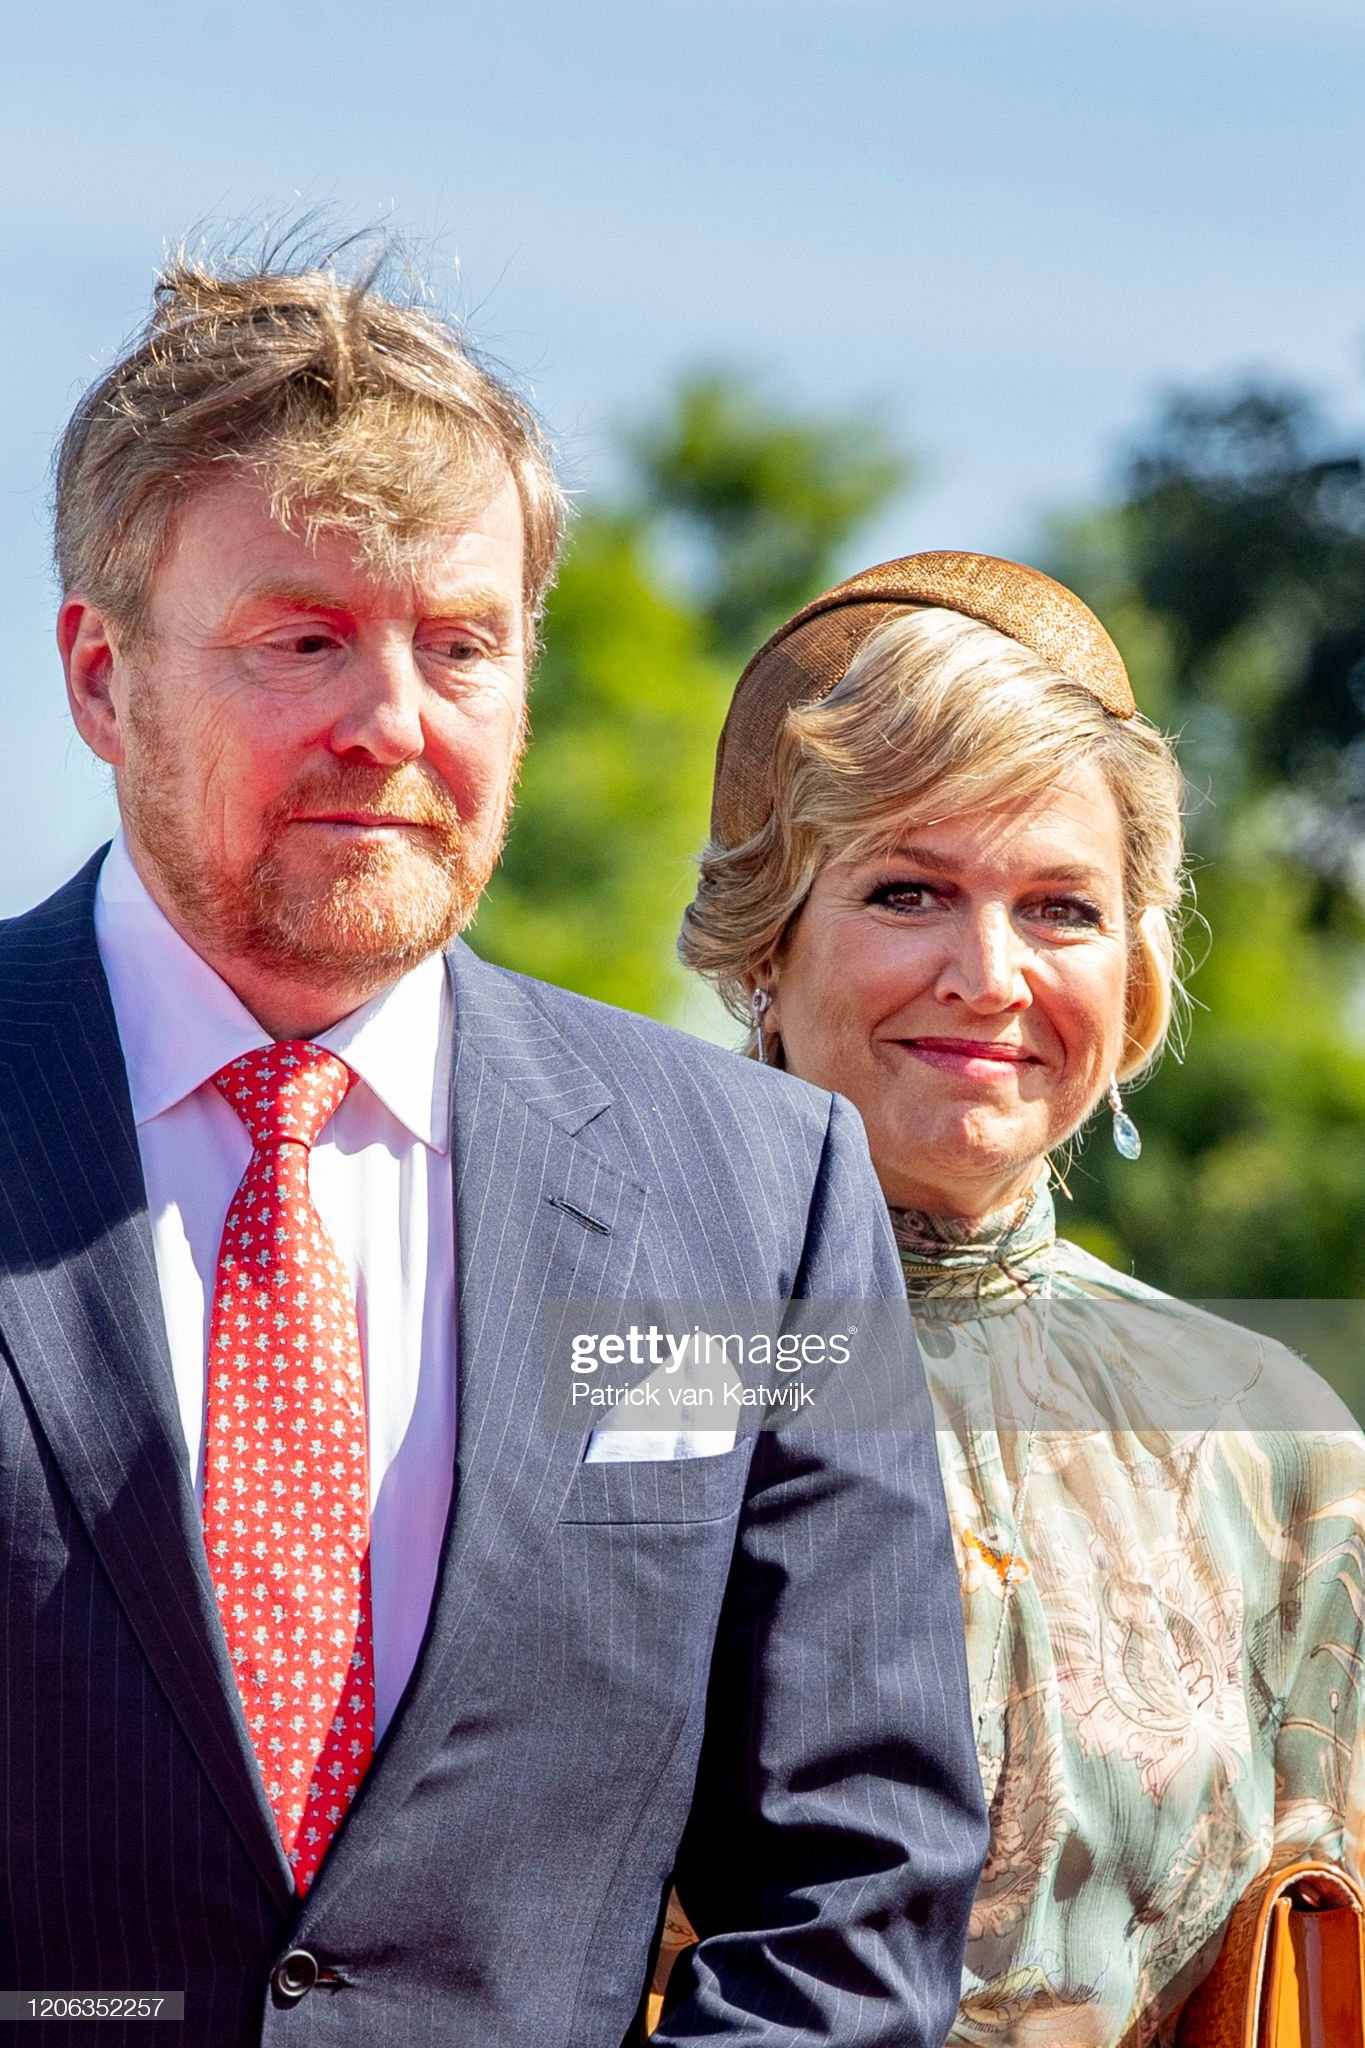 https://media.gettyimages.com/photos/king-willemalexander-of-the-netherlands-and-queen-maxima-of-the-a-picture-id1206352257?s=2048x2048